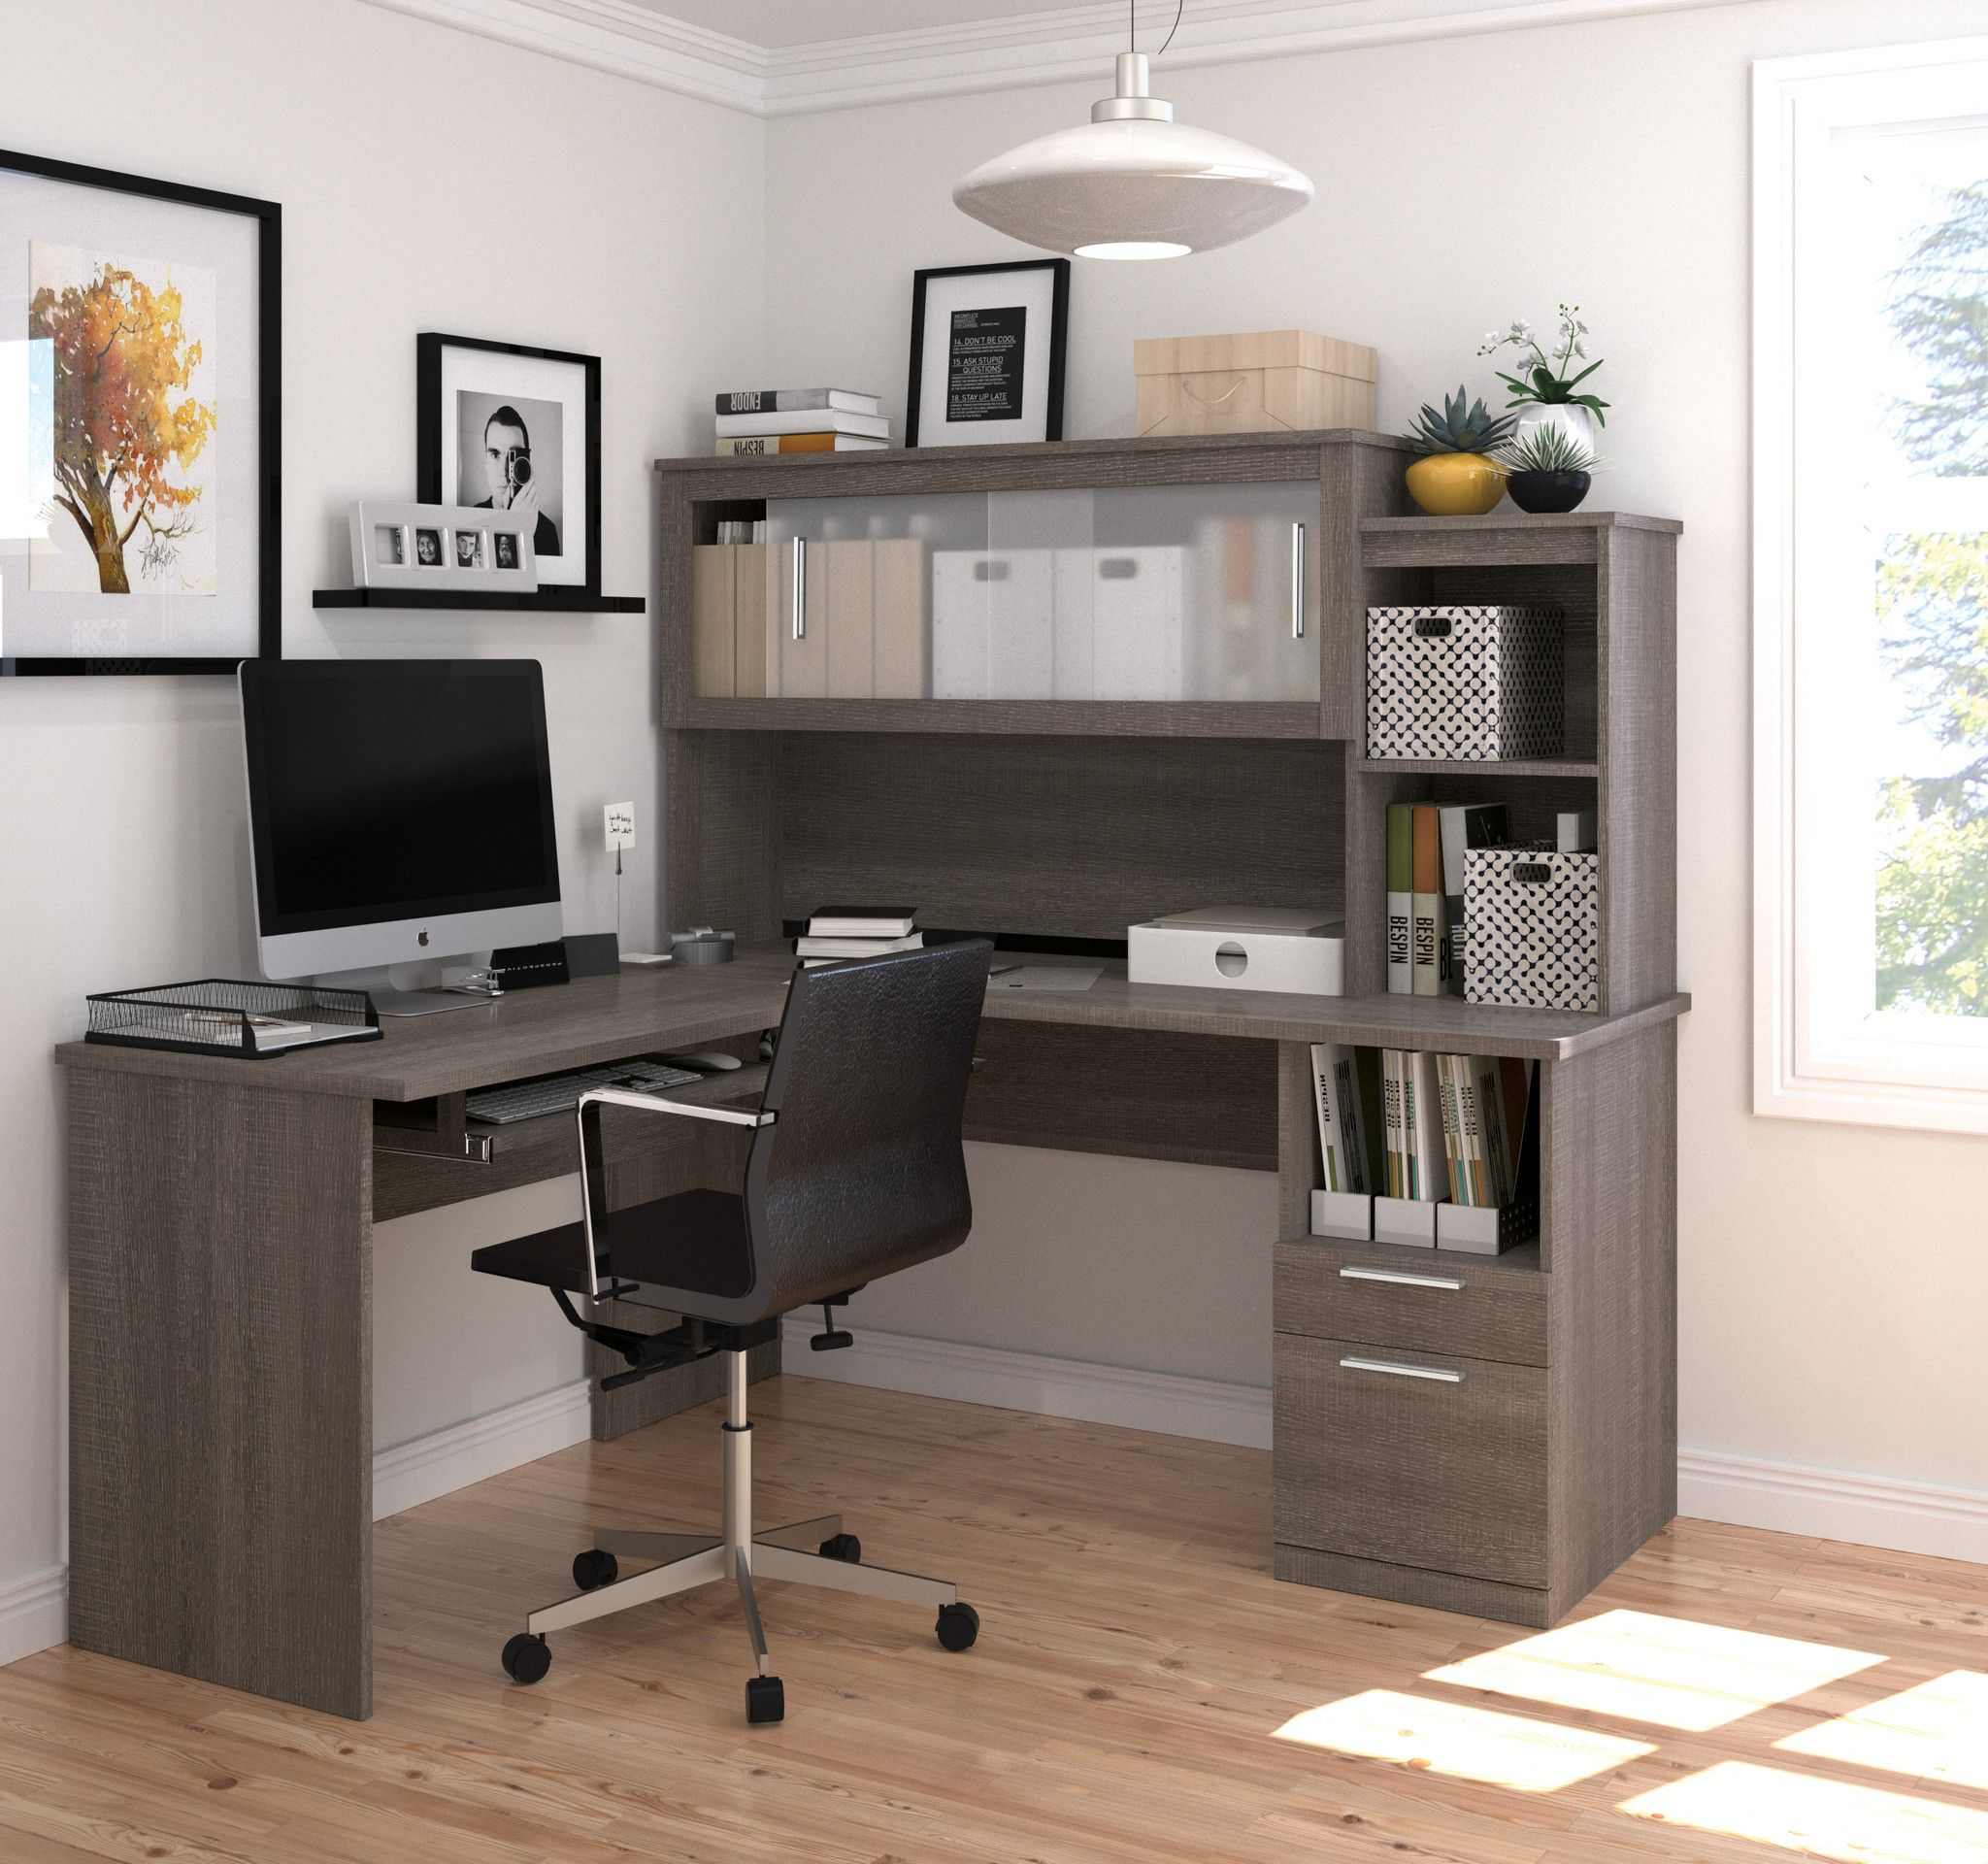 L shaped fice Desk and Hutch with Frosted Glass Doors in Bark Gray